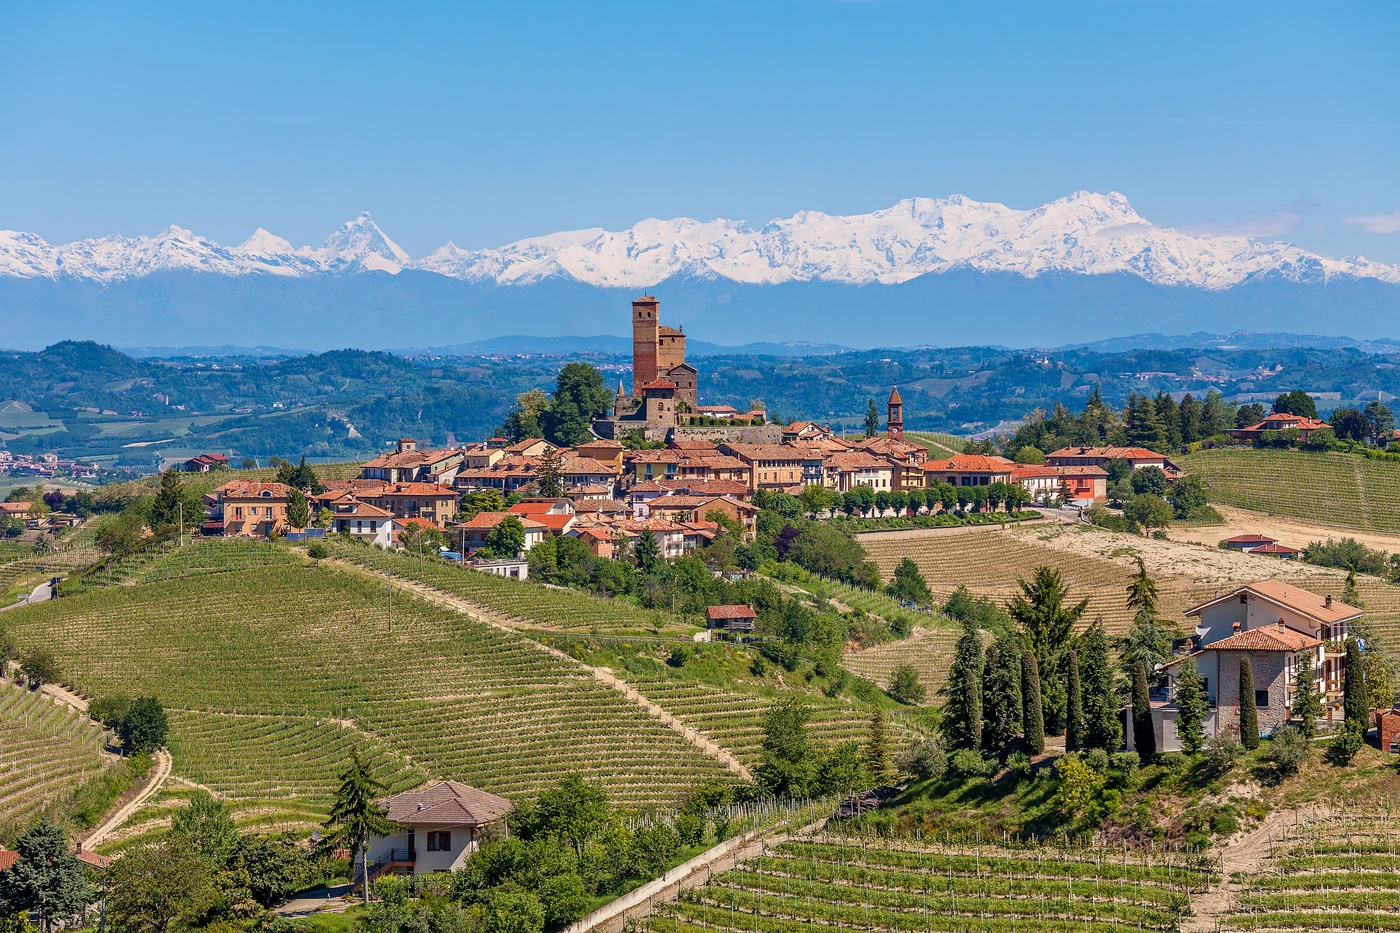 Small town in Piedmont with the view of the Alps in the background